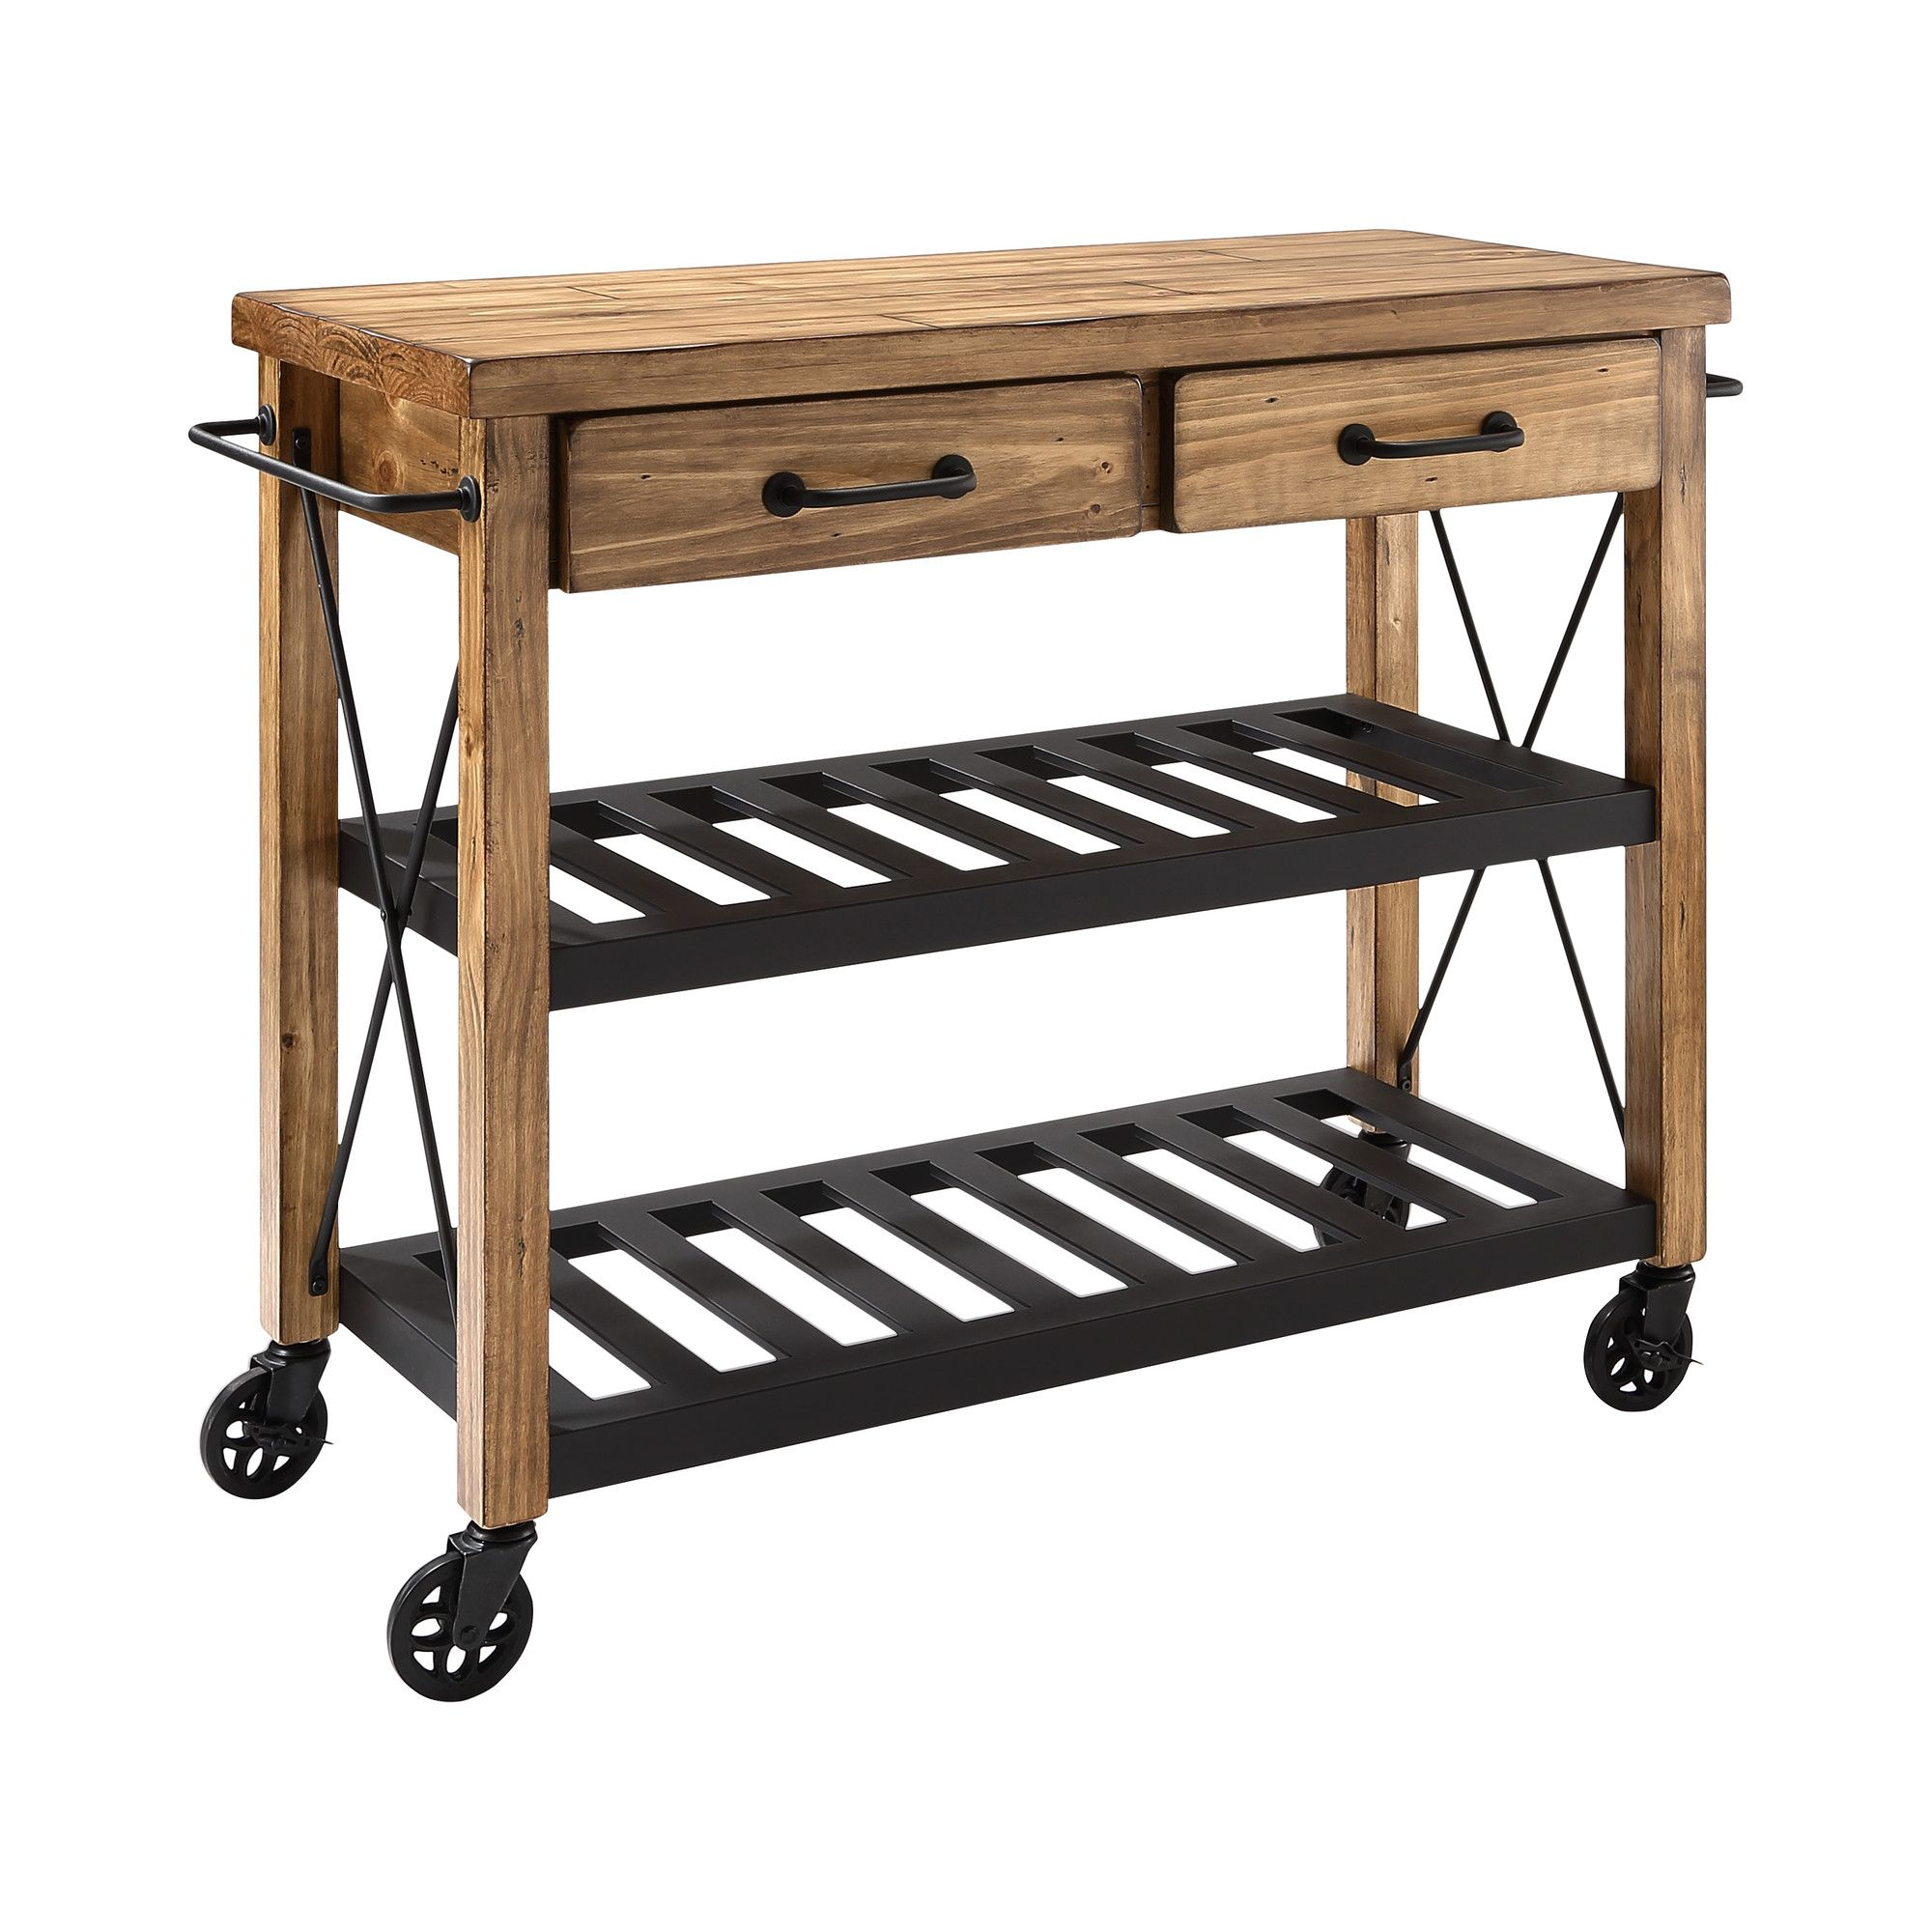 Chamberlin Kitchen Cart | Bosque y Cocinas